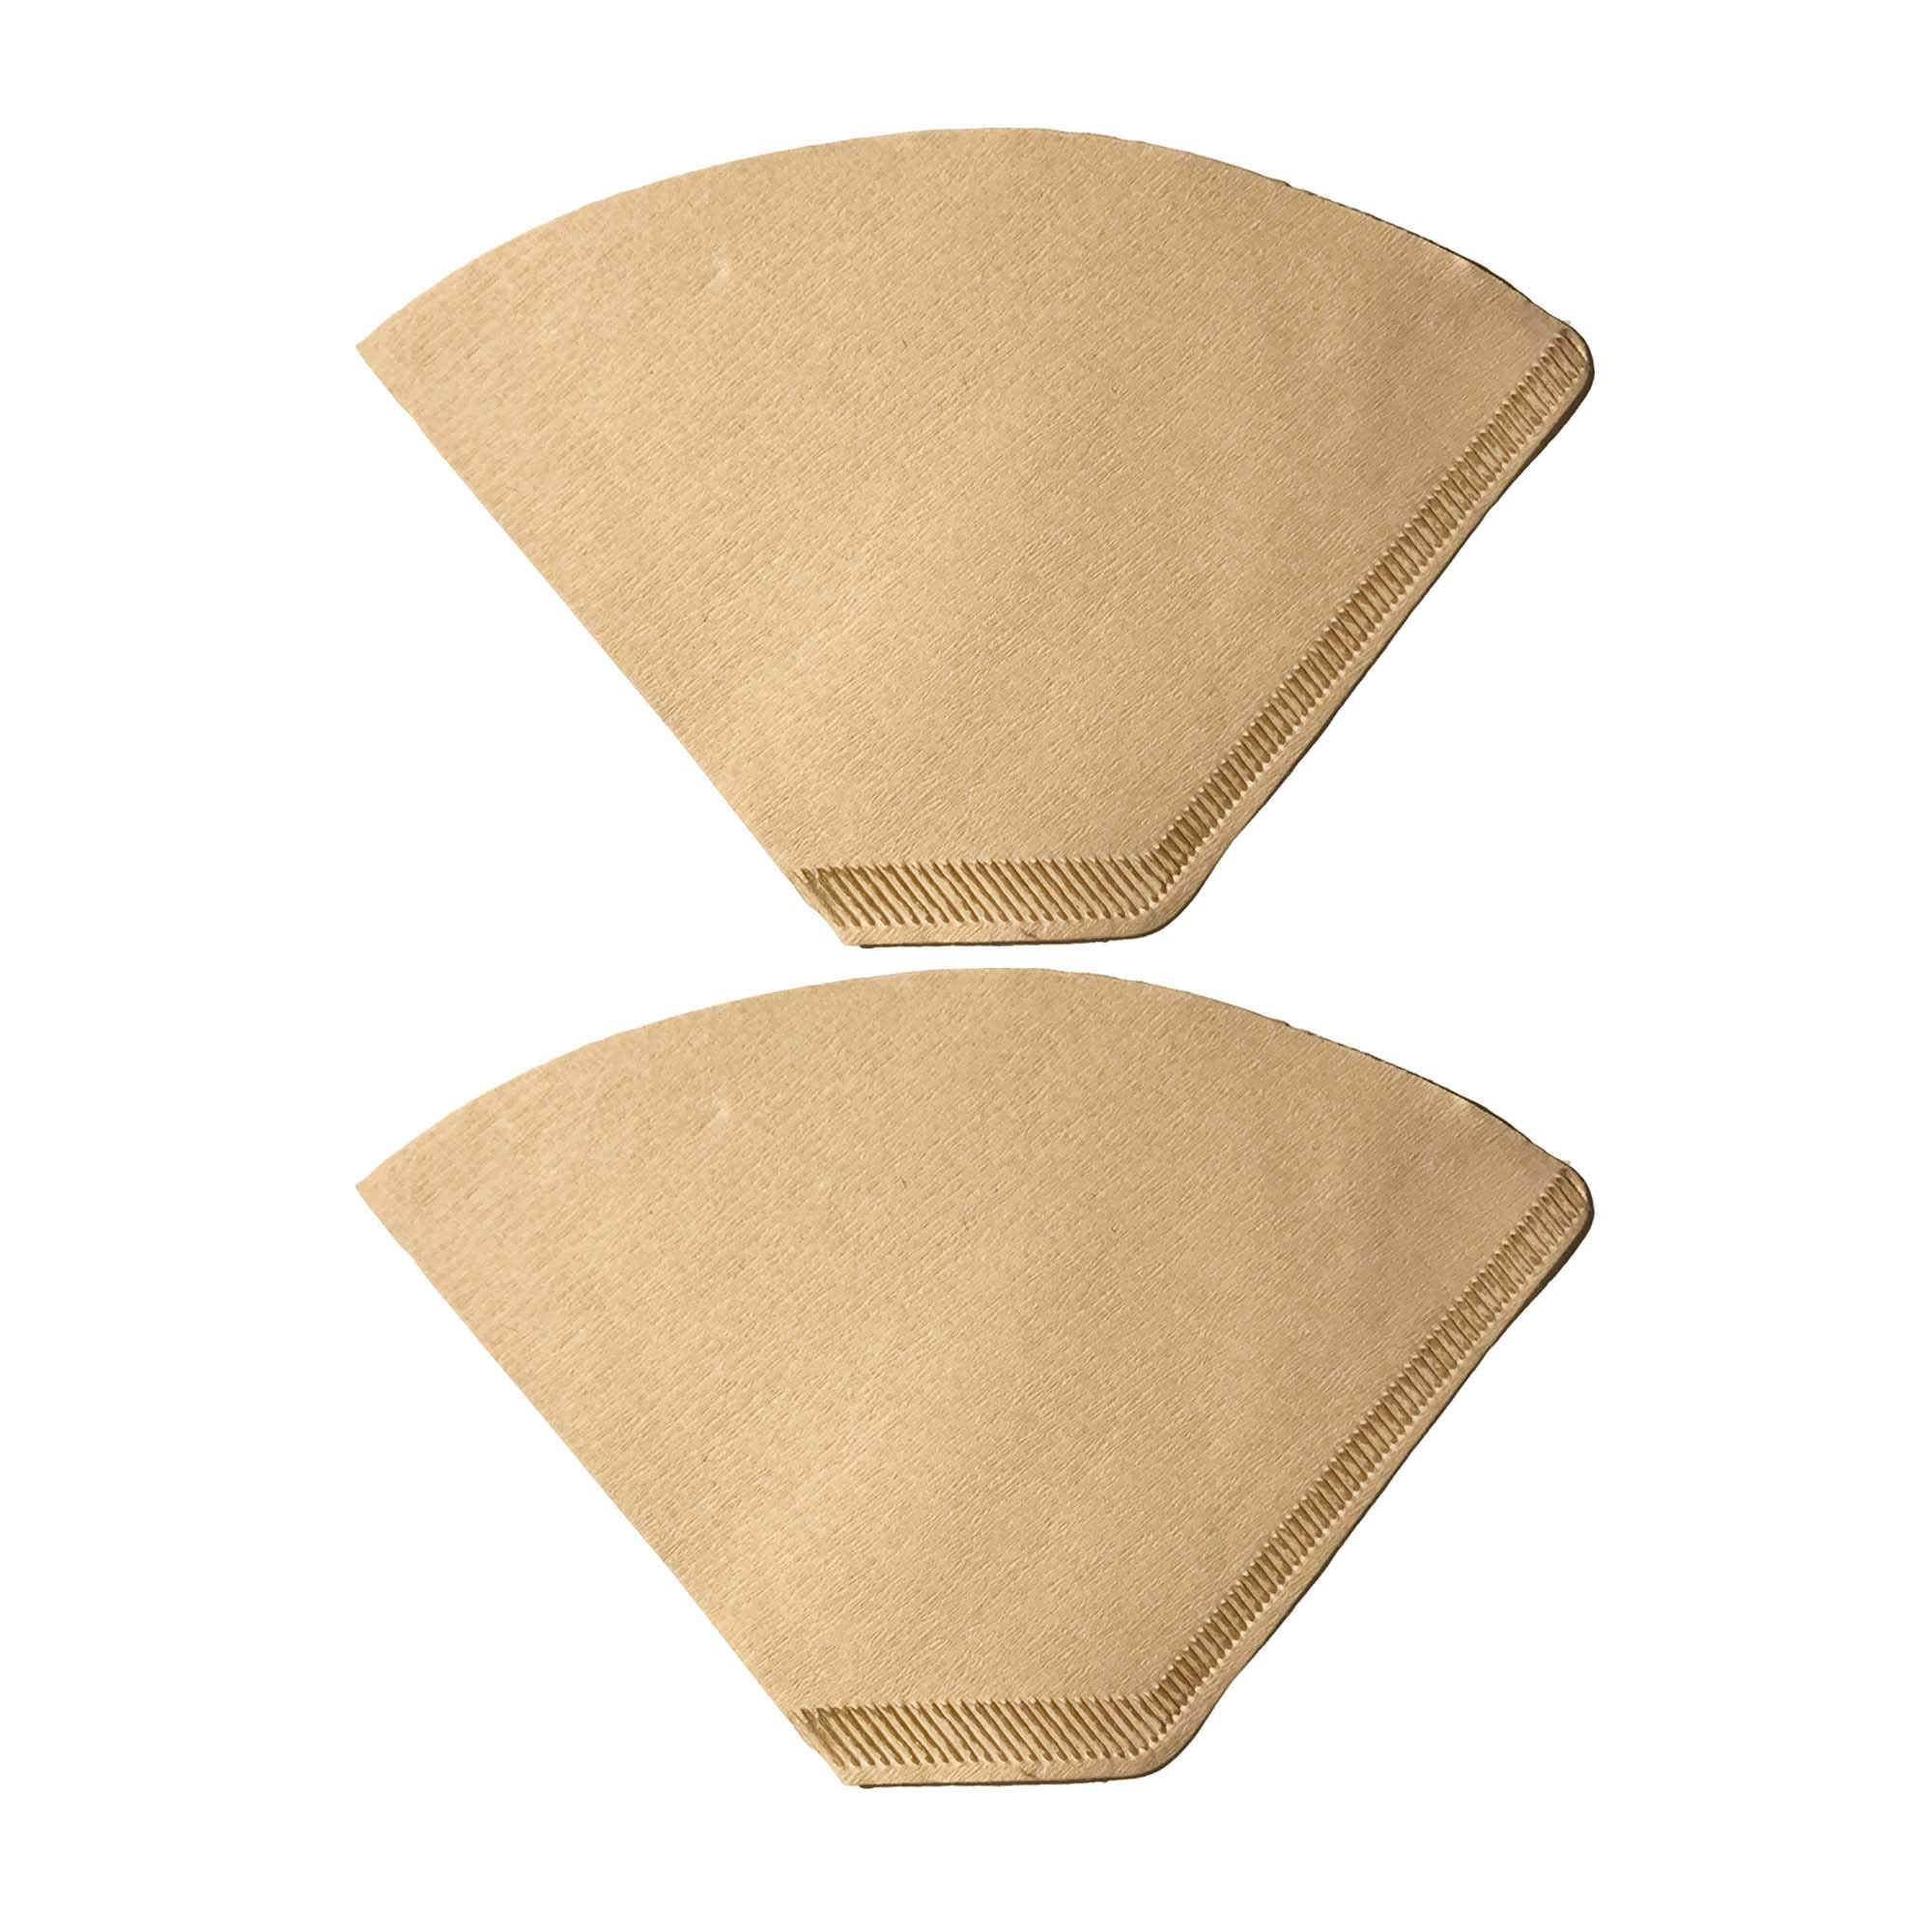 Think Crucial 200 Replacement #2 Coffee Filters Premium Unbleached, All Natural, Brew Brown Paper Cone, Fits All Coffee Makers With #2 Number 2 Coffee Basket Holder including Melitta